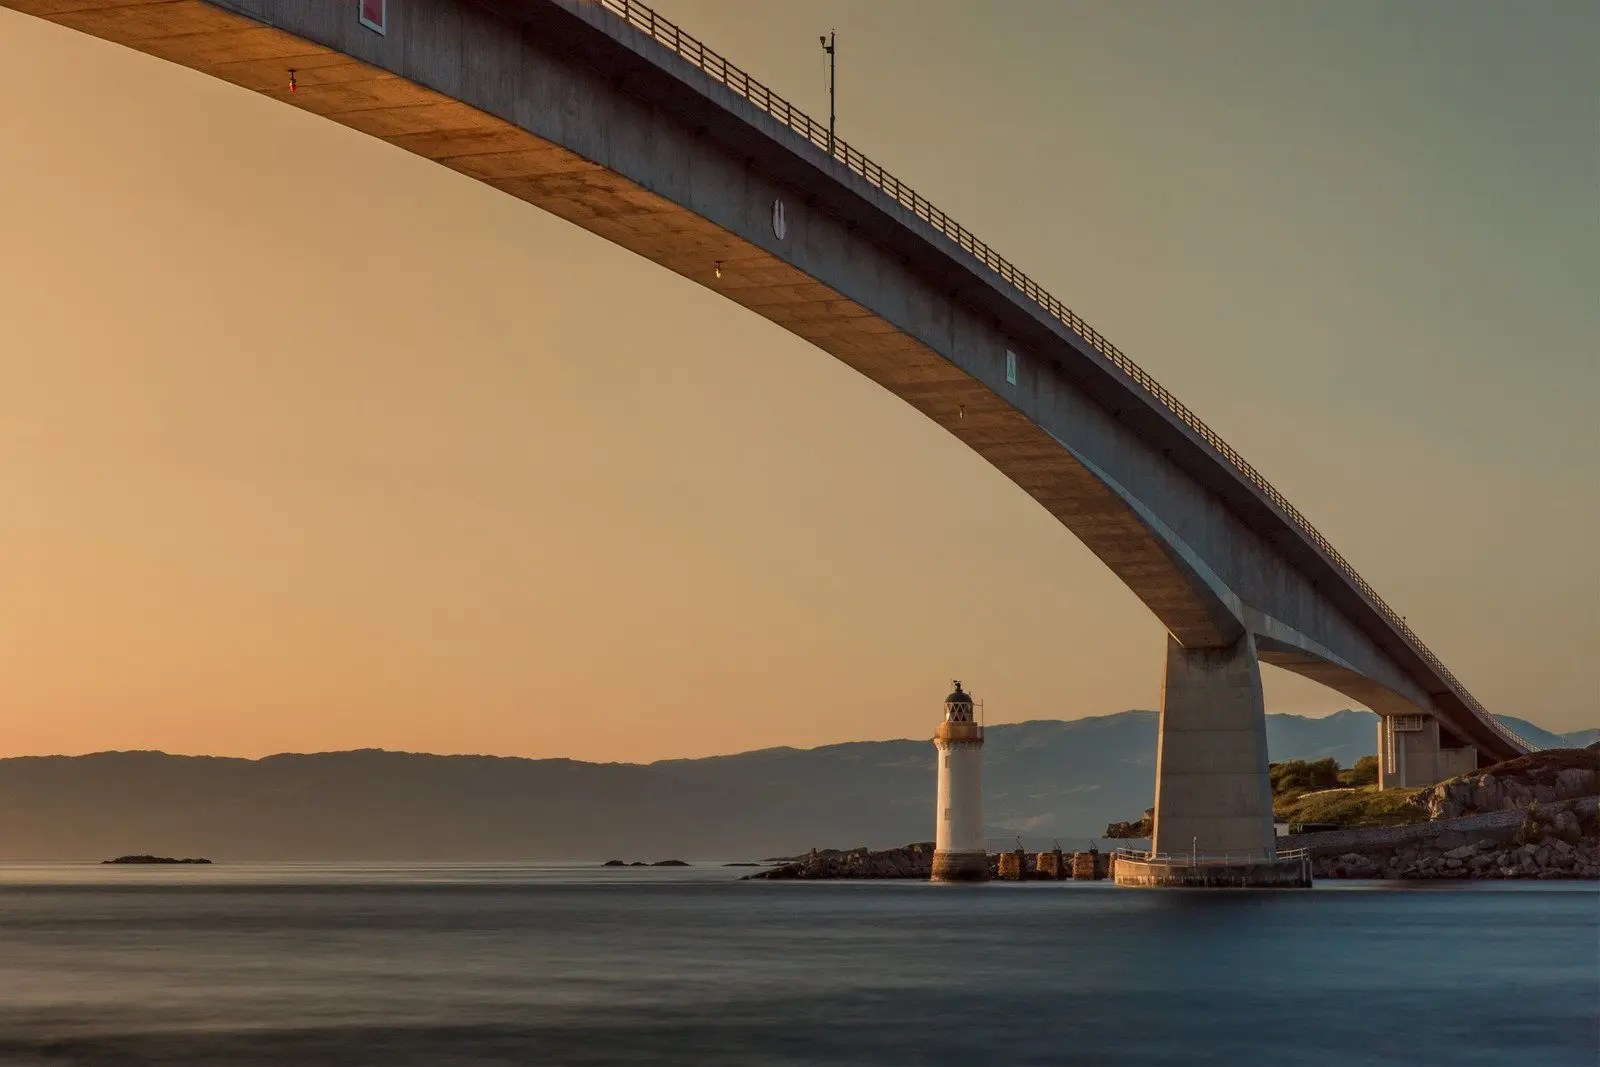 This is an image of a bridge for institutional research bridge services.